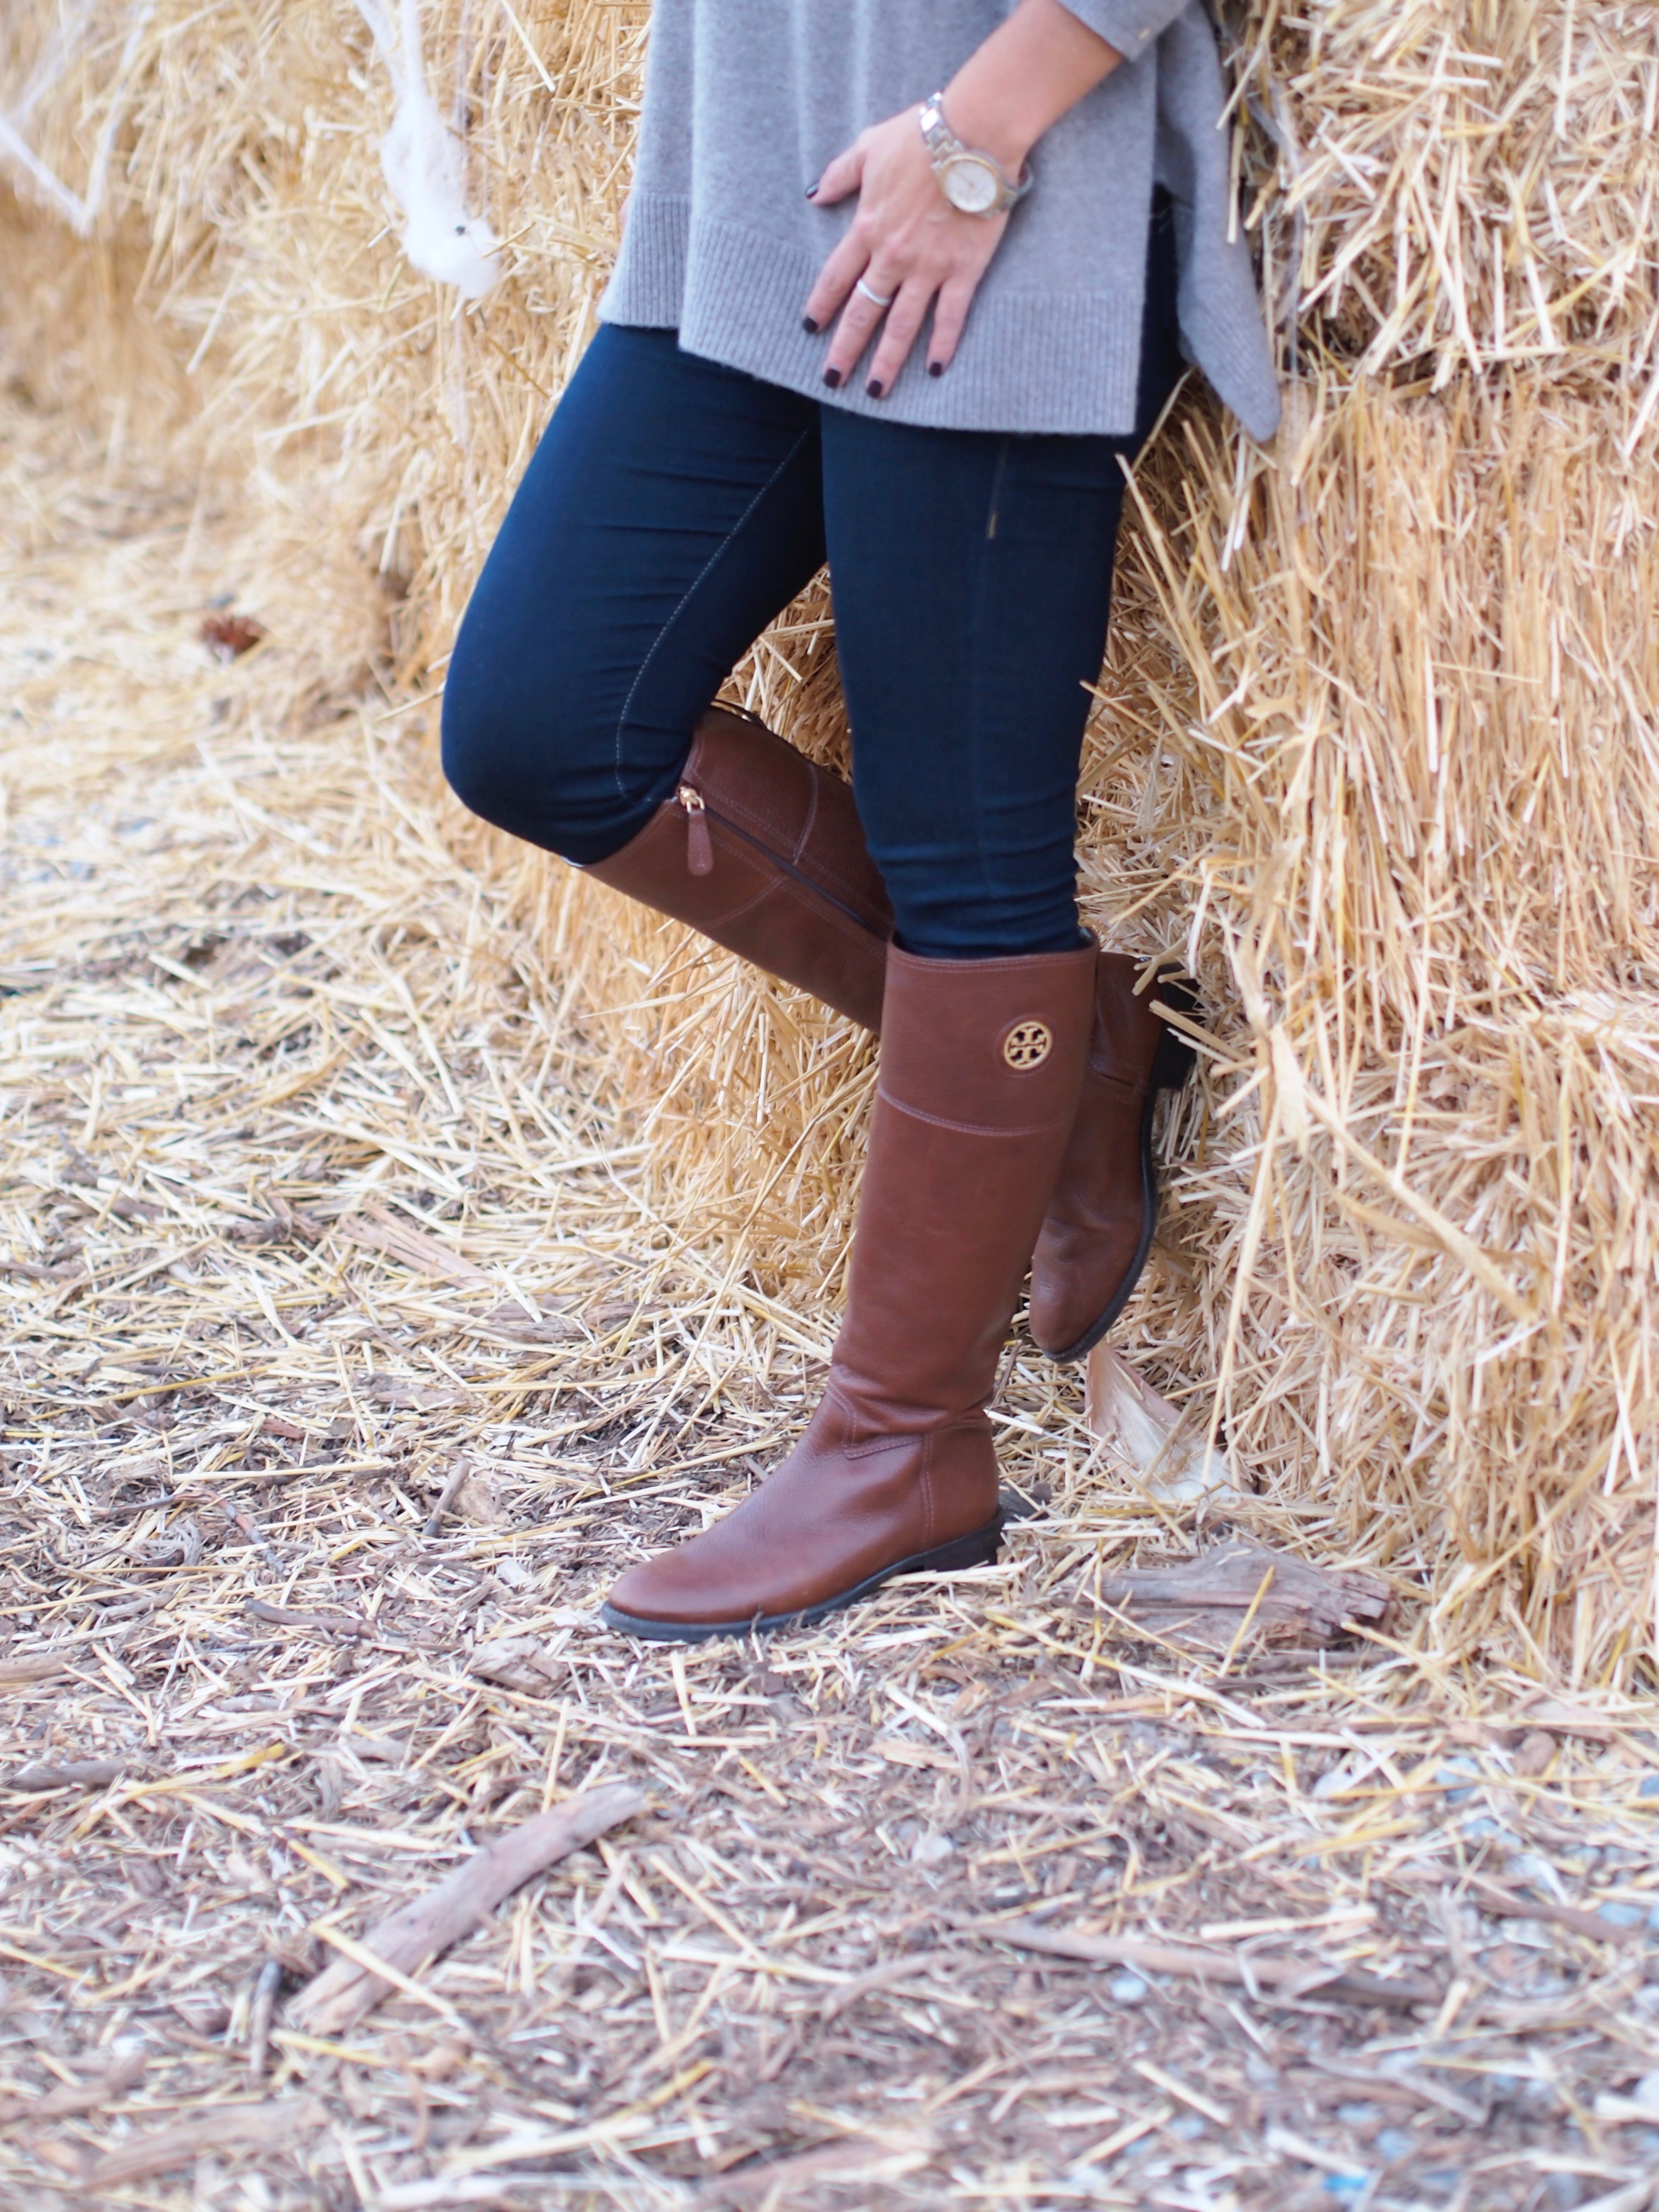 Standing 2, True religion jeans, jeans, boots, Tall boots, burberry, cashmere, sweater, tall boots, fall